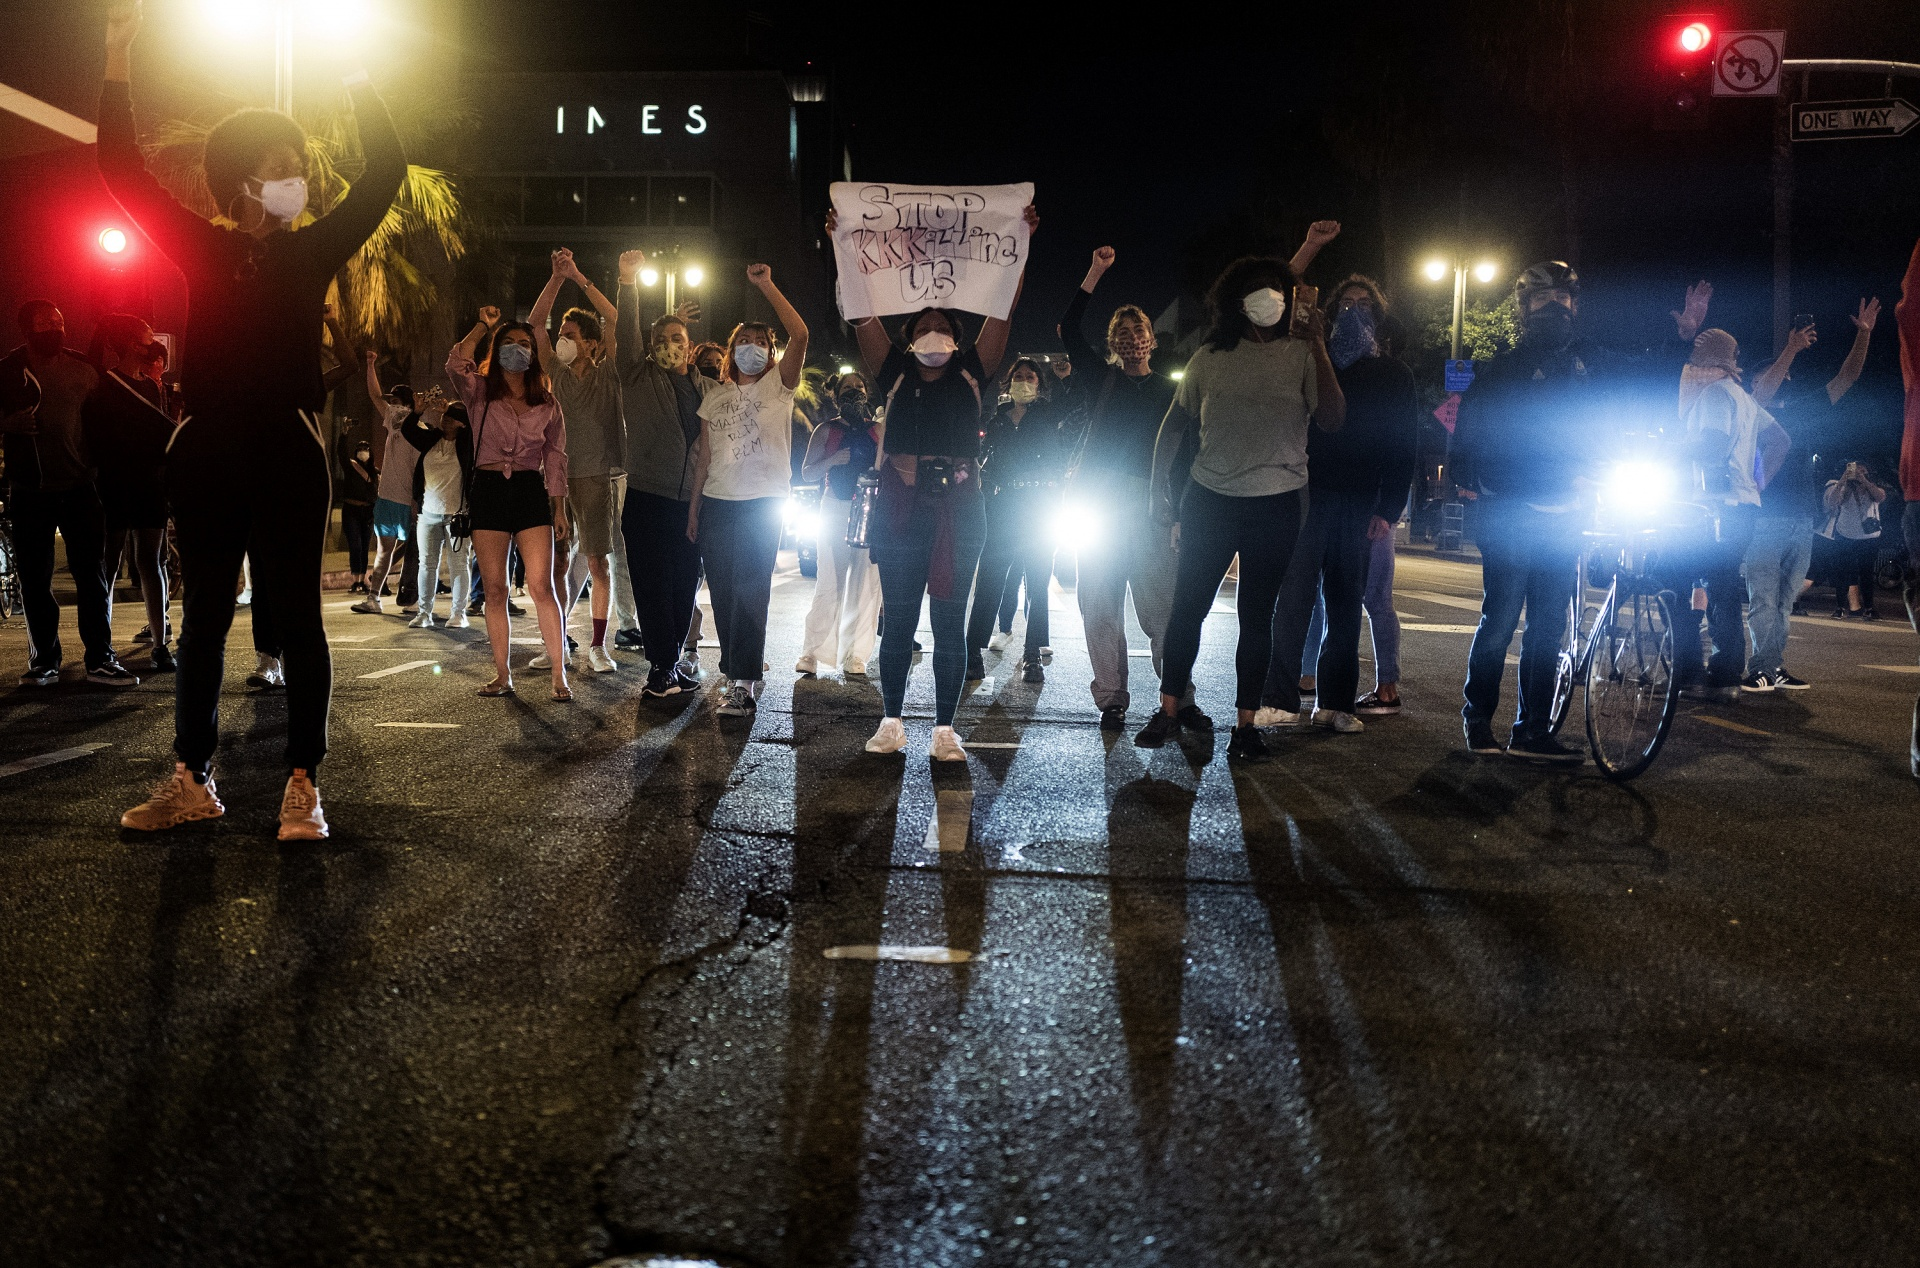 Demonstrators in Los Angeles block traffic during a protest